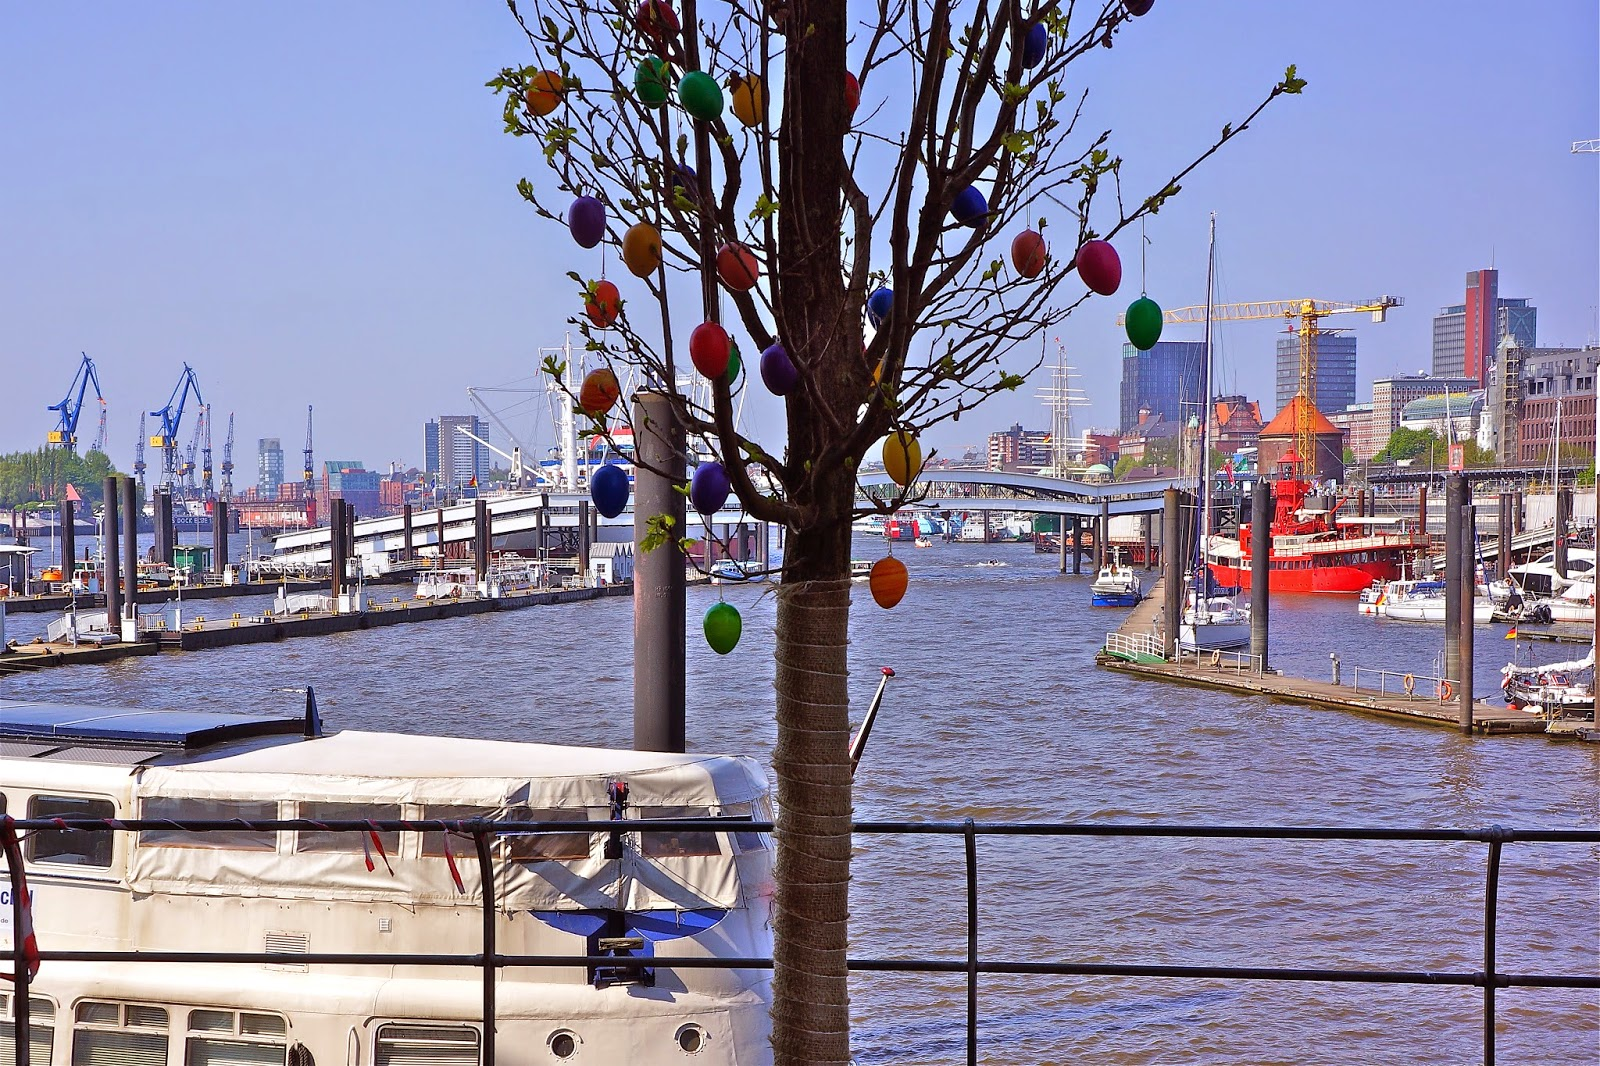 Picture of a tree decorated with Easter eggs. Shot in Hamburg, Germany.